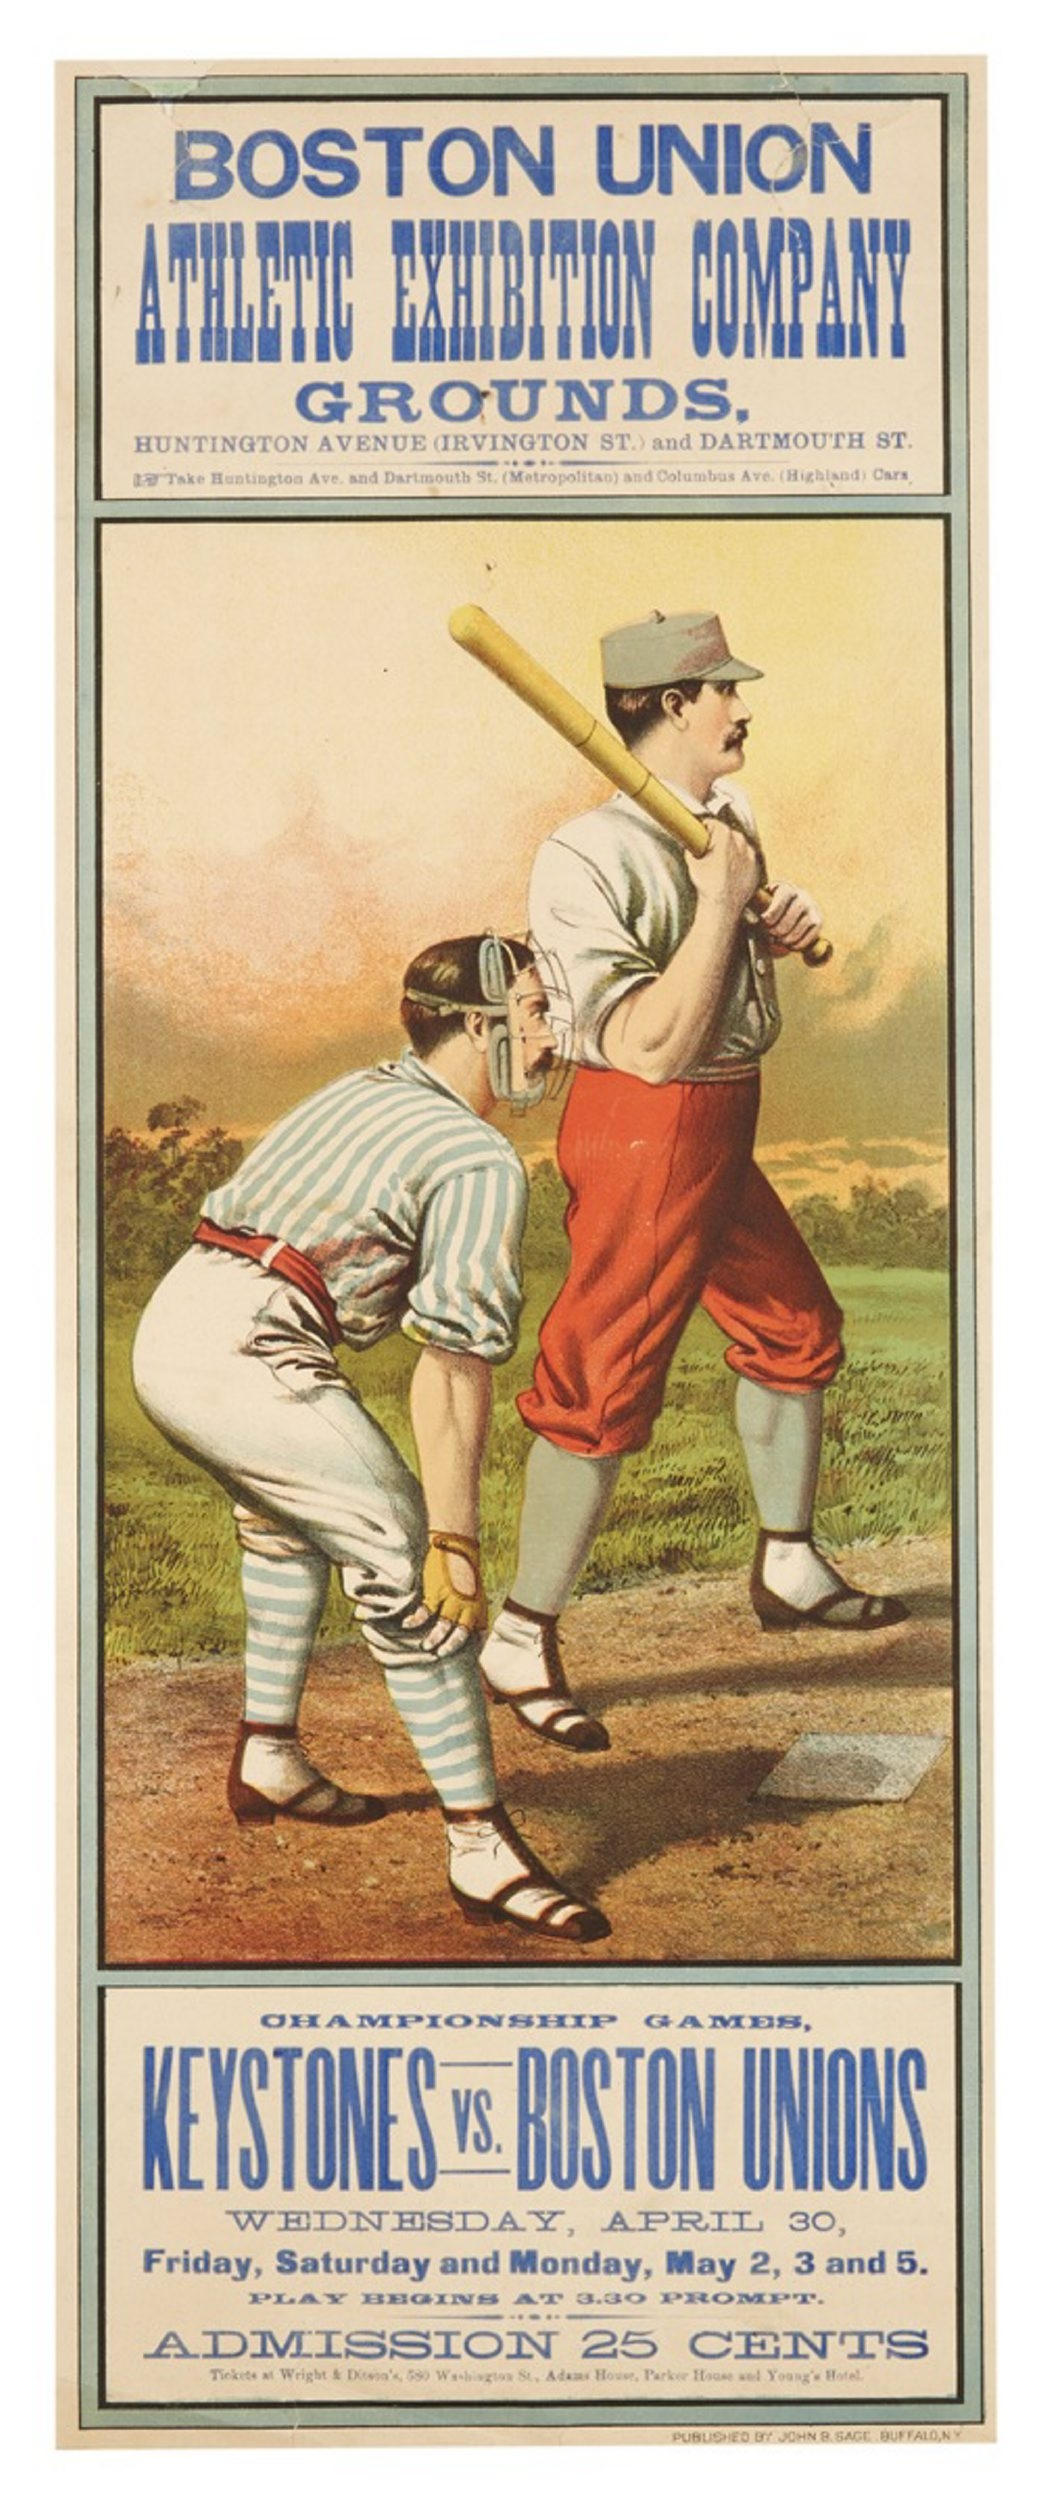 A lithographed poster showing two baseball players competing in Boston in 1884 sold for $15,000 at an April 2014 Bonhams auction in New York City.